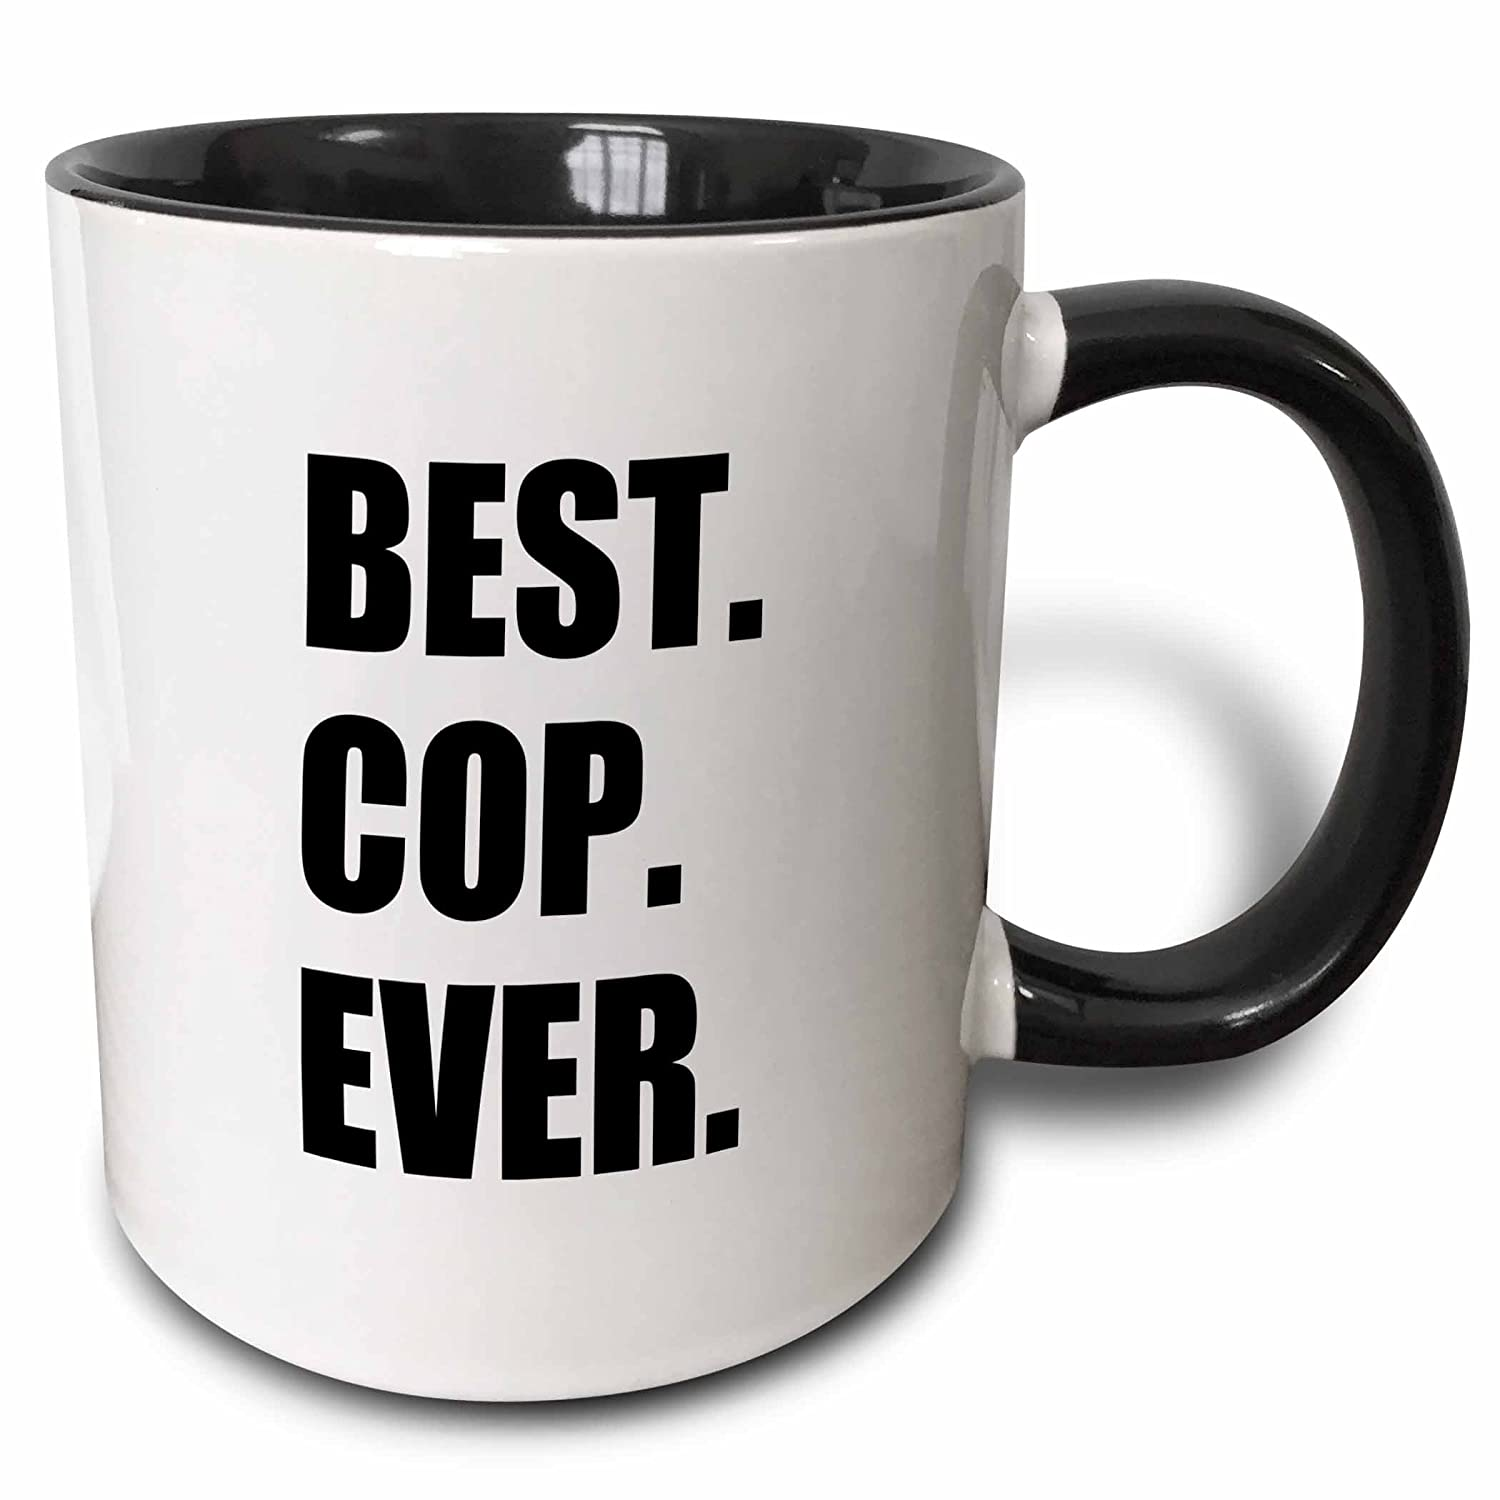 Amazon.com: 3dRose mug_179770_4 Best Cop Ever - fun text gifts for ...